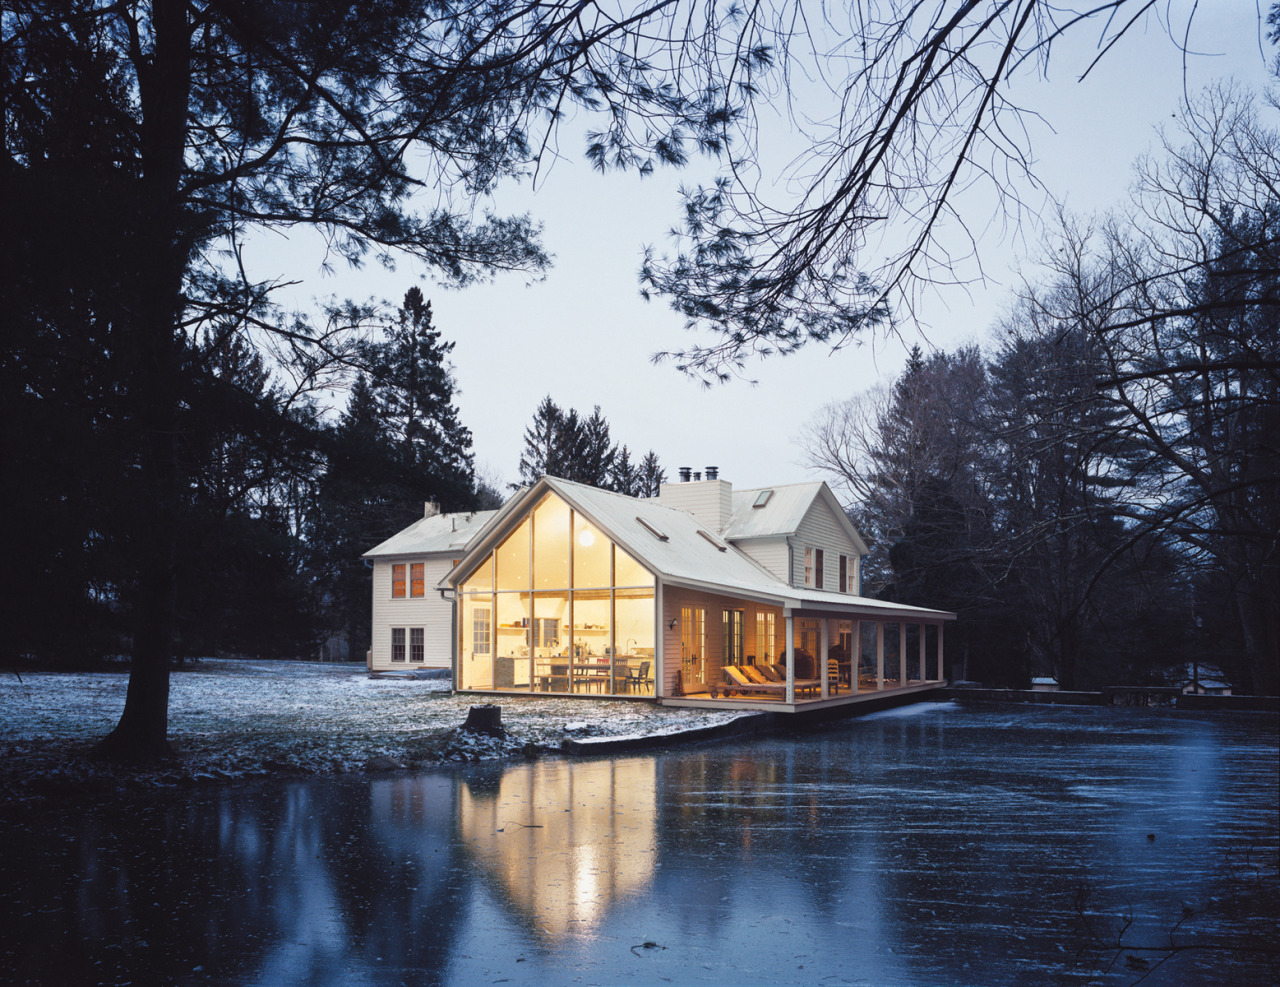 letsbuildahome-fr:  The Floating Farmhouse in Eldred, New York. Restored by Givone Home. More photos.